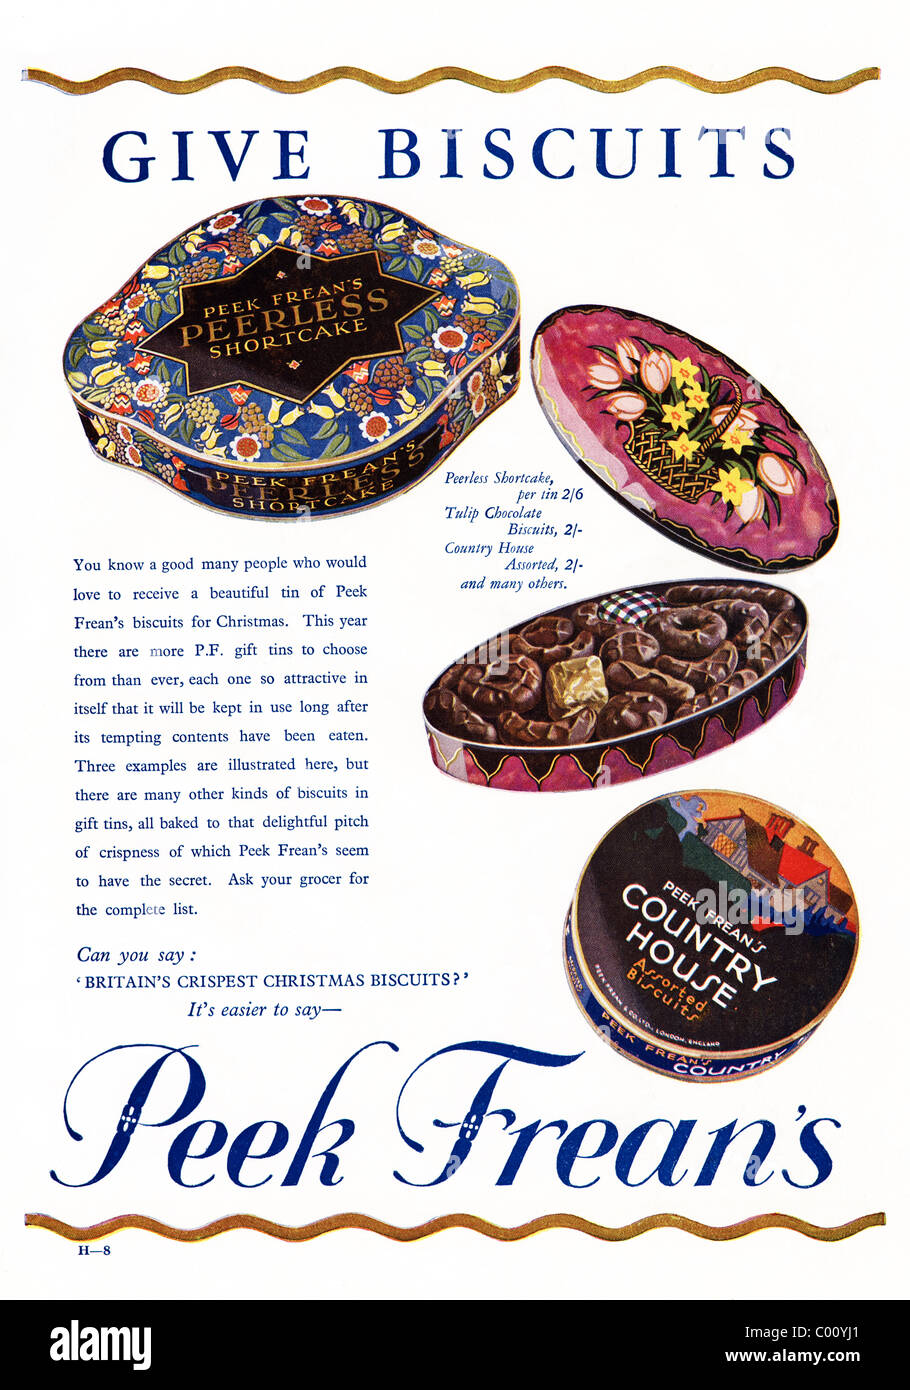 1920s full page advertisement in consumer magazine for PEAK FREEN'S Christmas biscuit selection - Stock Image